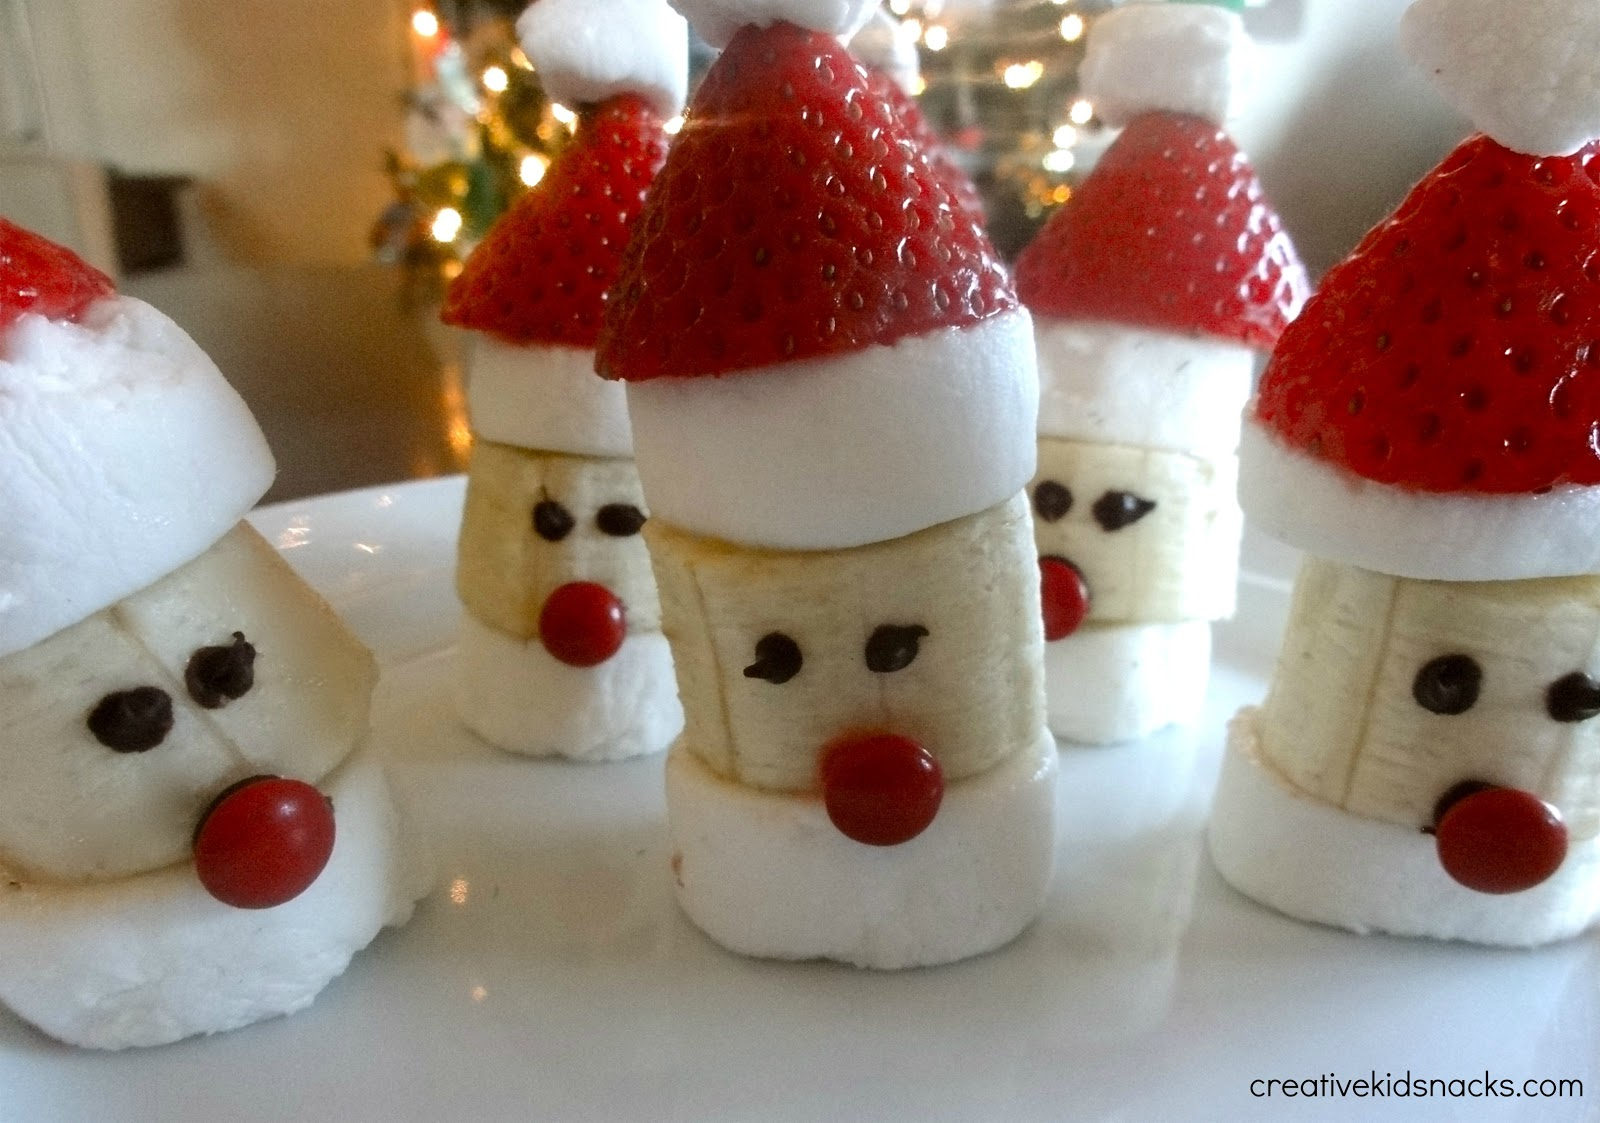 Cute Christmas Desserts Images & Pictures - Becuo